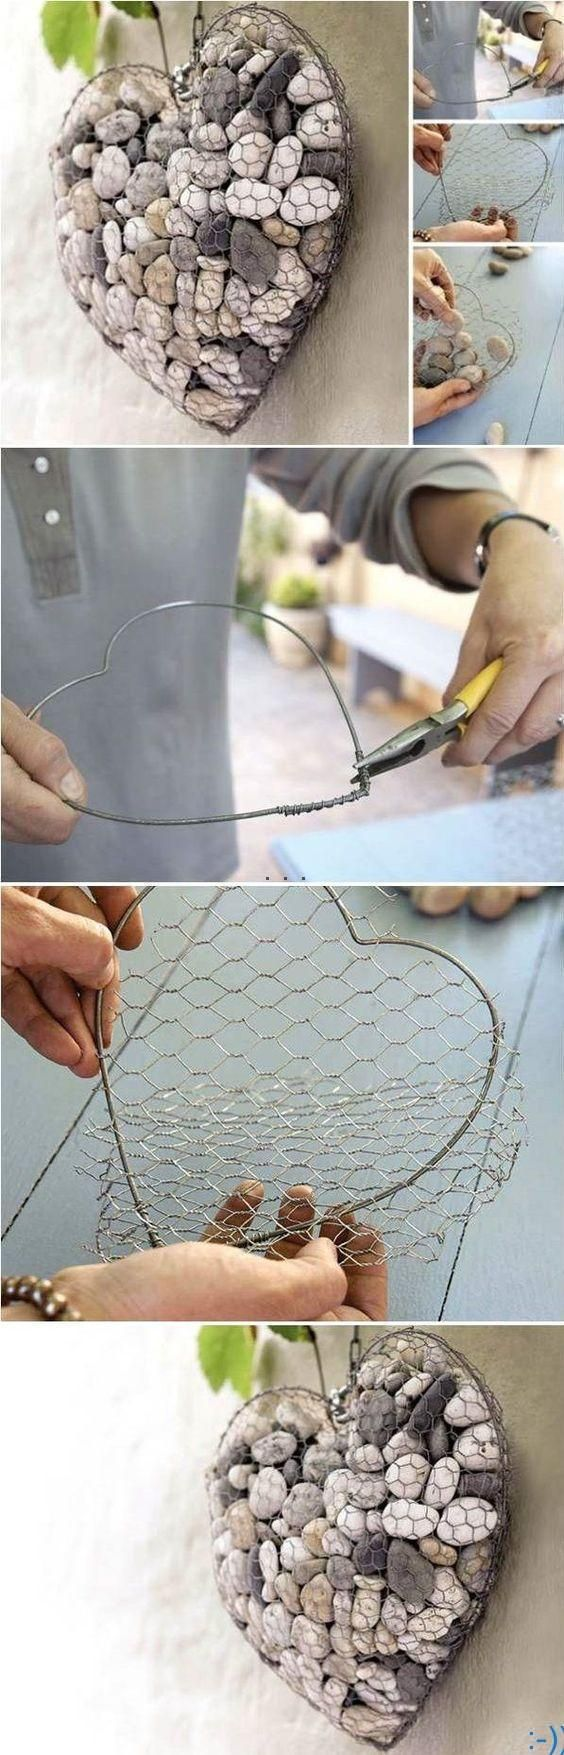 You can make a stone heart to uniquely decorate your balcony or your patio. You need some regular wire, some chicken wire and stones. First, by curling the regular wire, make a heart shape. Then, cover both sides with the chicken wire and fill it with stones. source : pinterest